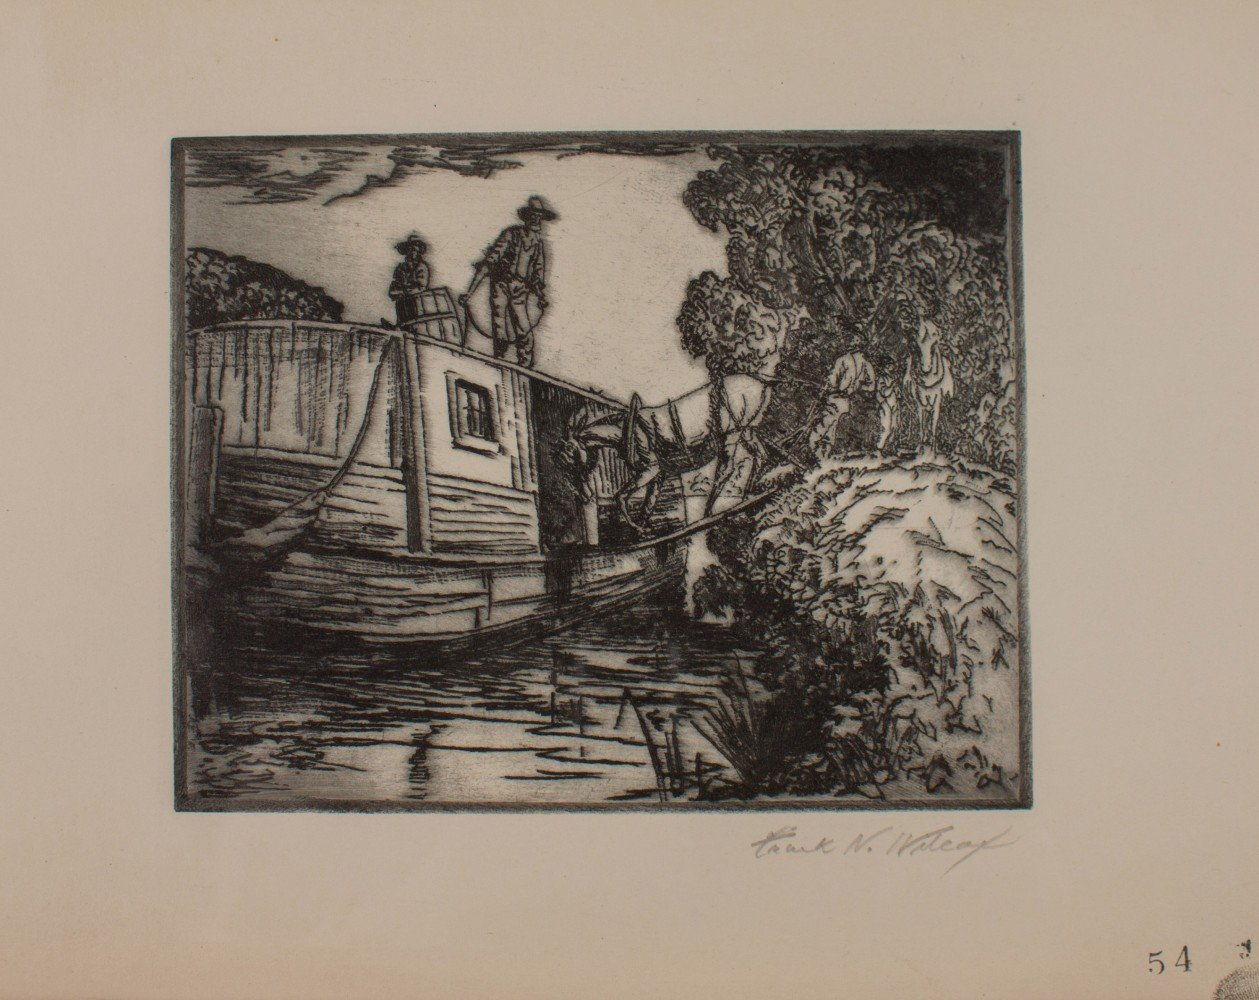 Figurative Landscape Etching in Paper Drawing: